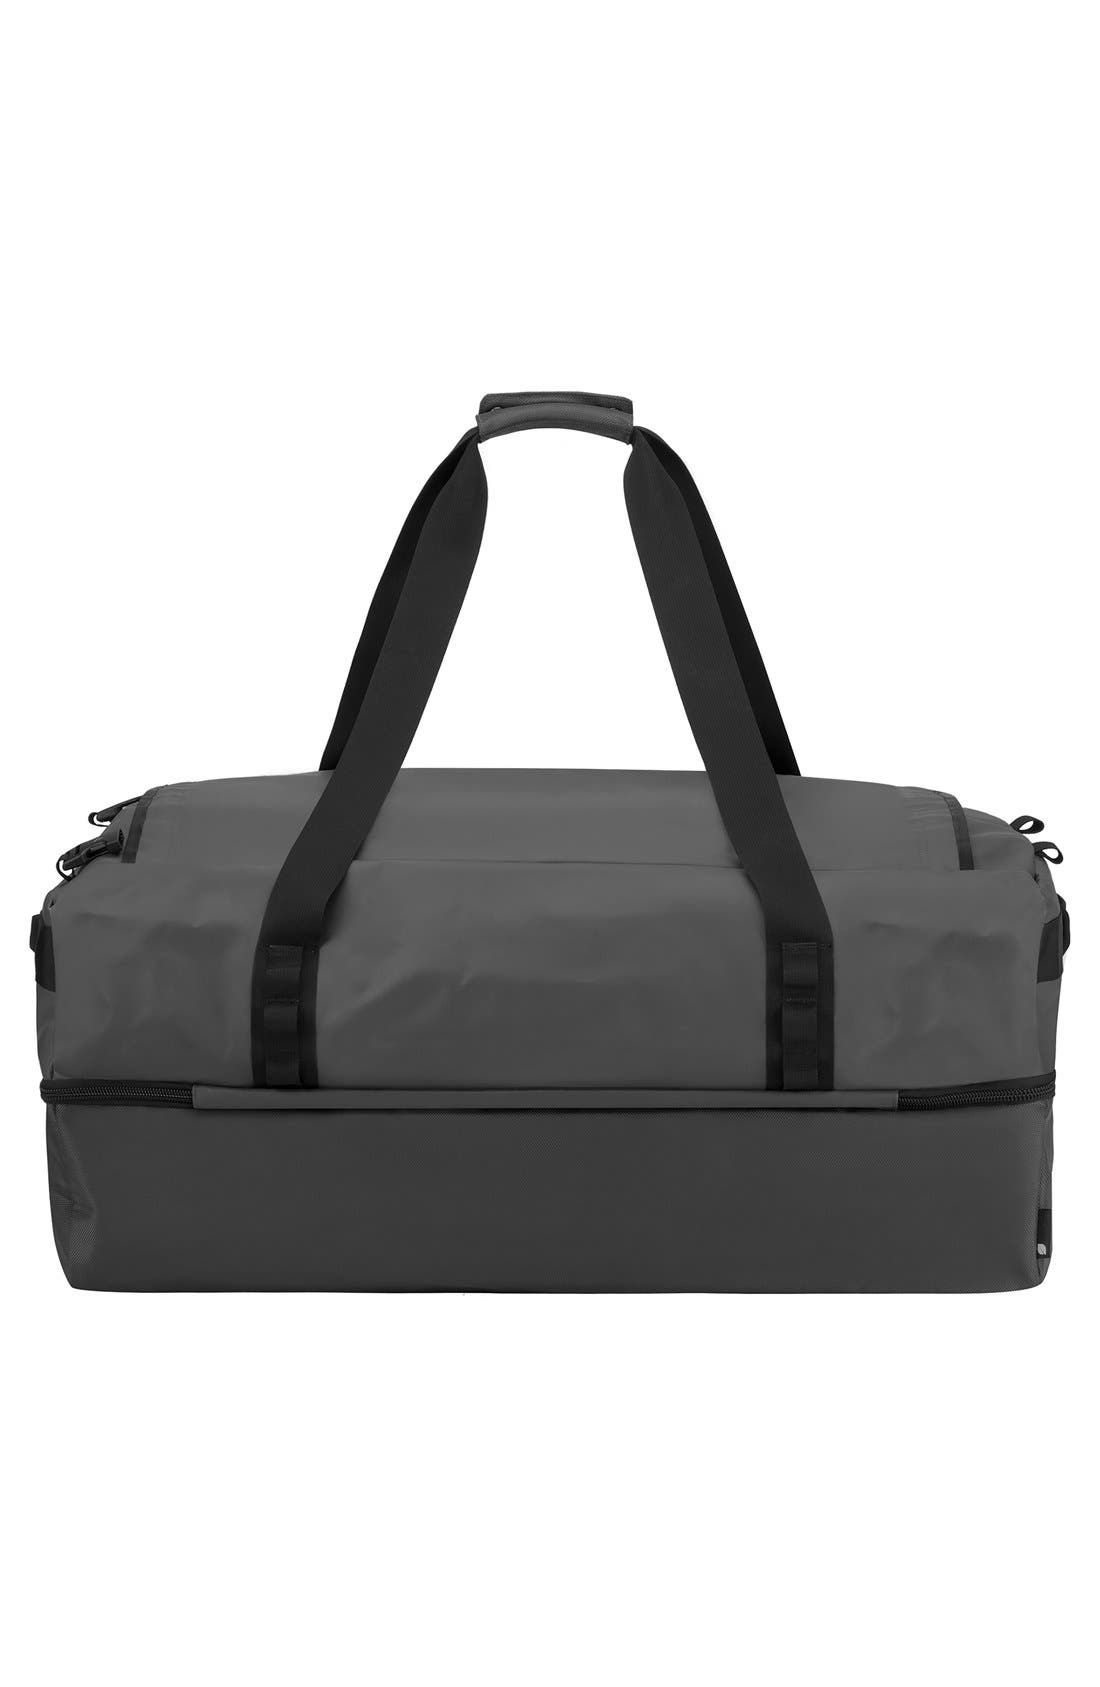 TRACTO Large Split Convertible Duffel Bag,                             Alternate thumbnail 4, color,                             001